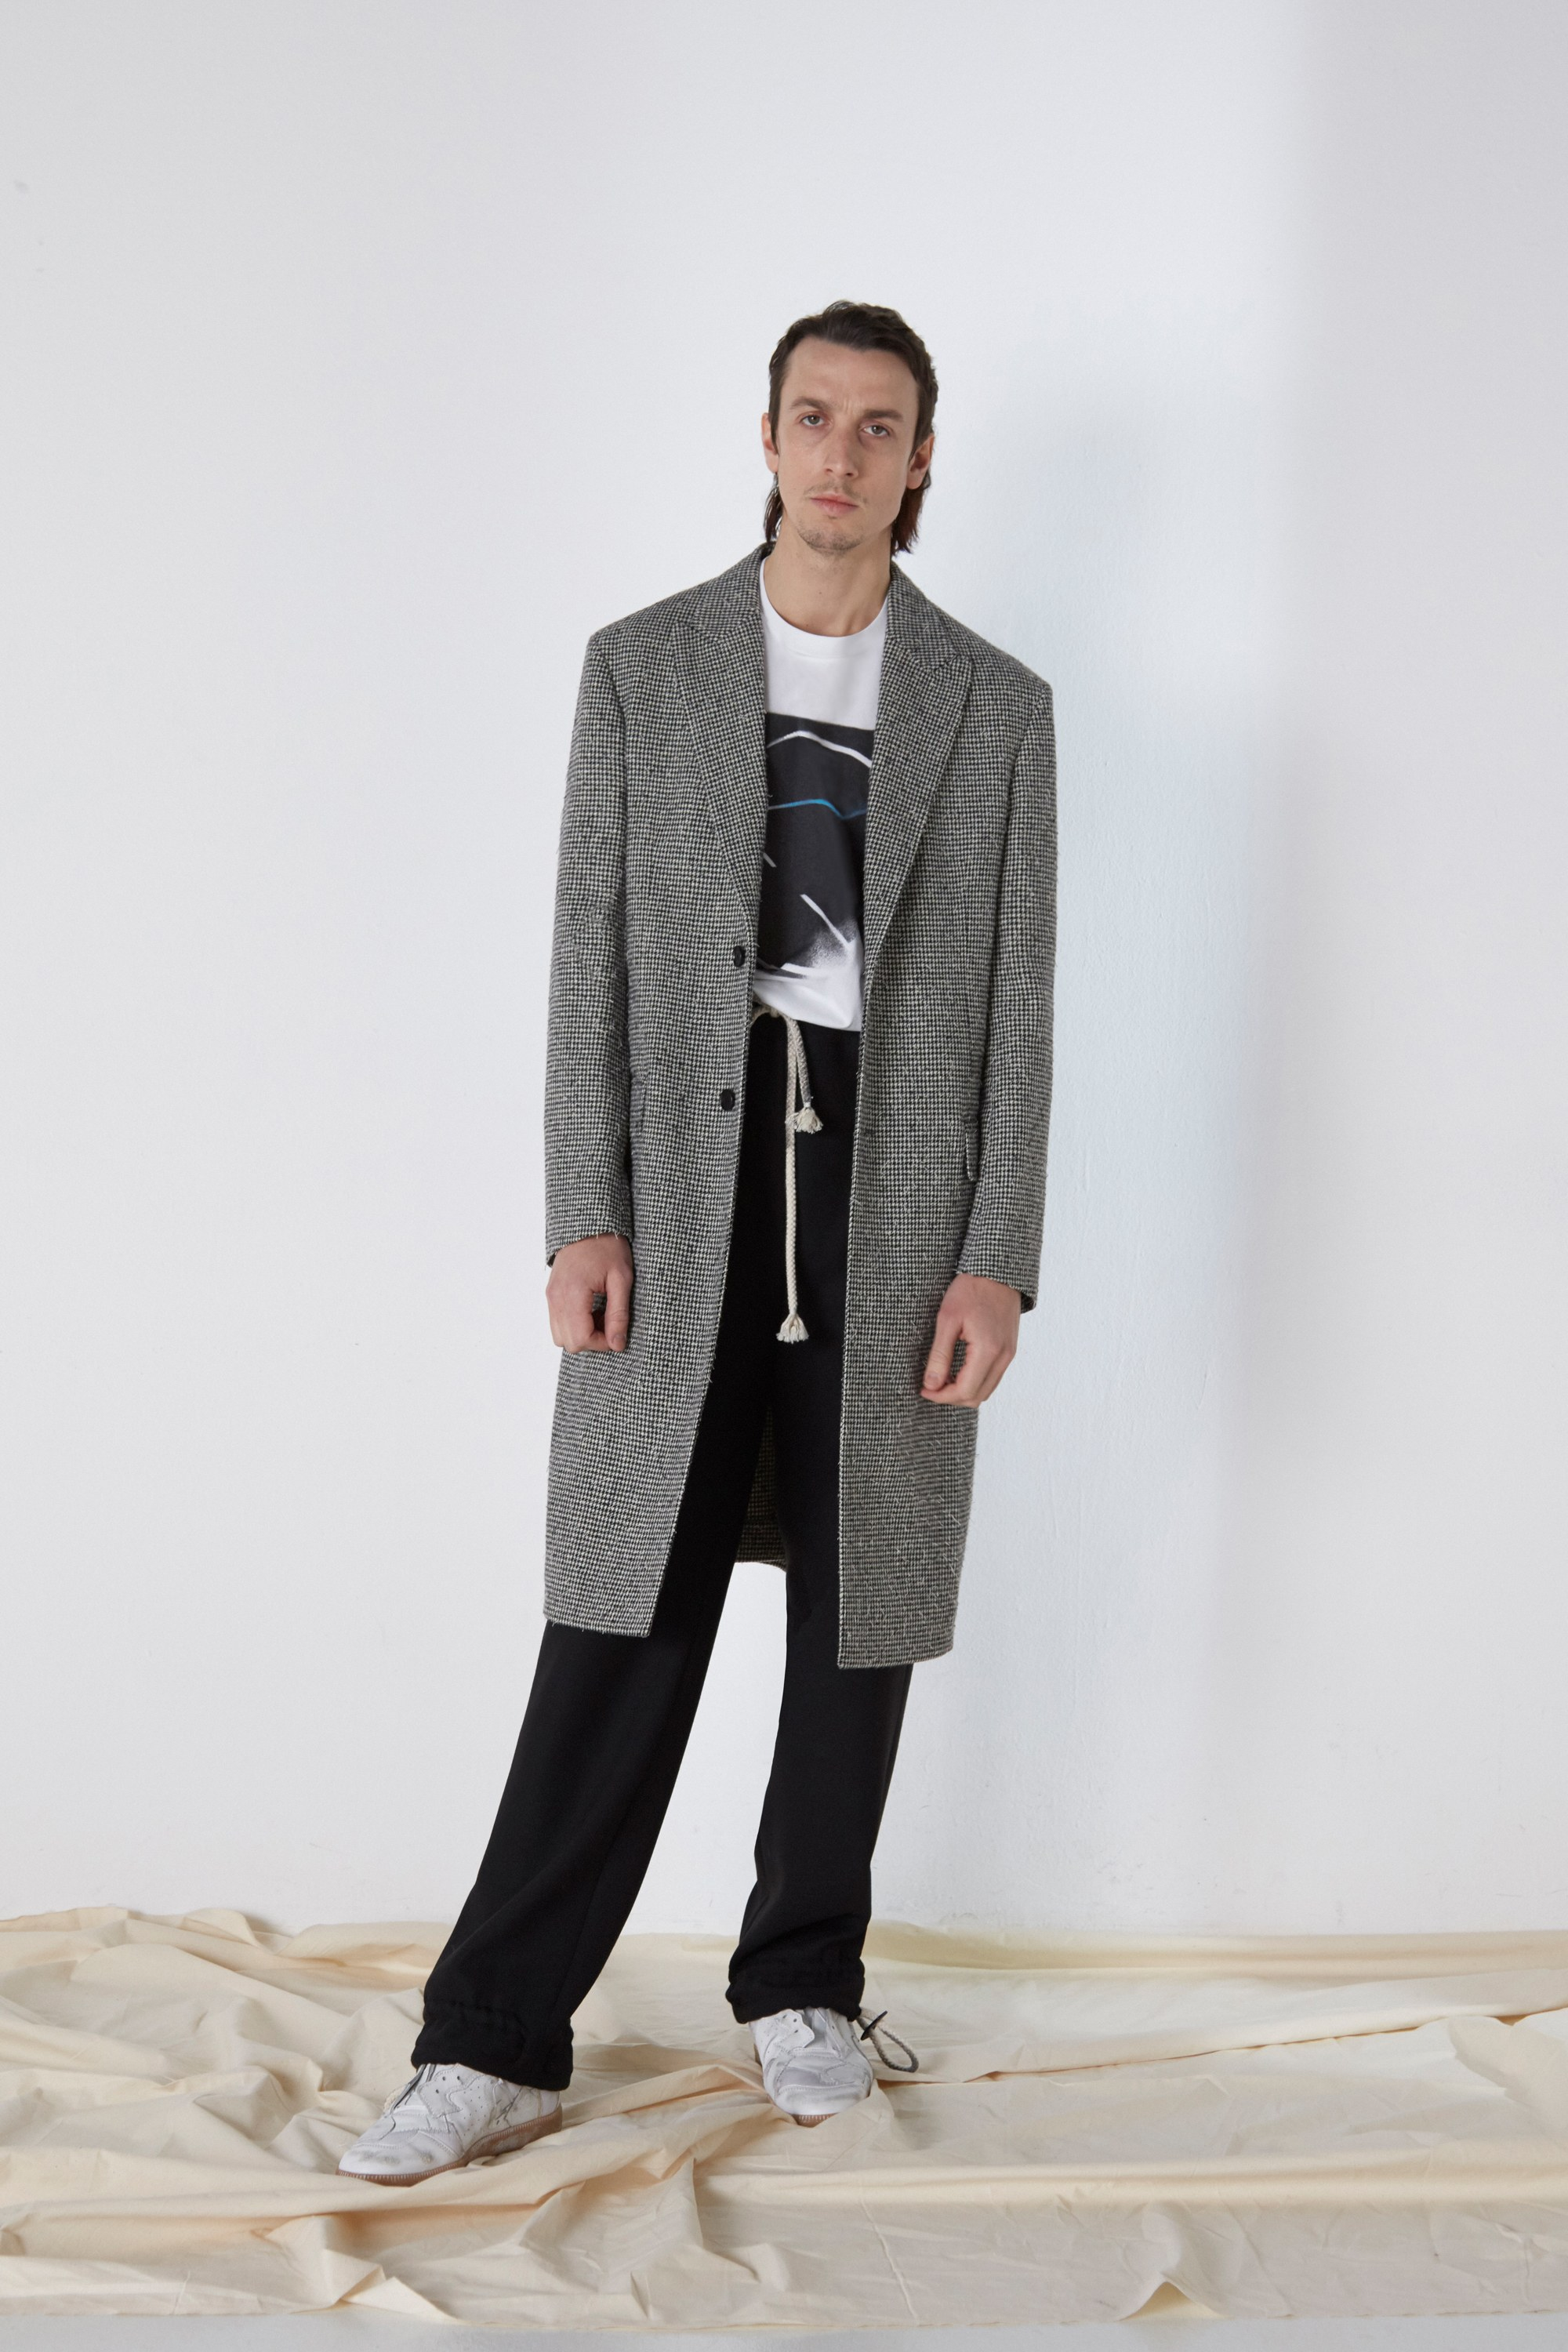 As cool as possible and as comfy as possible.   Maison Margiela, Courtesy of Vogue.